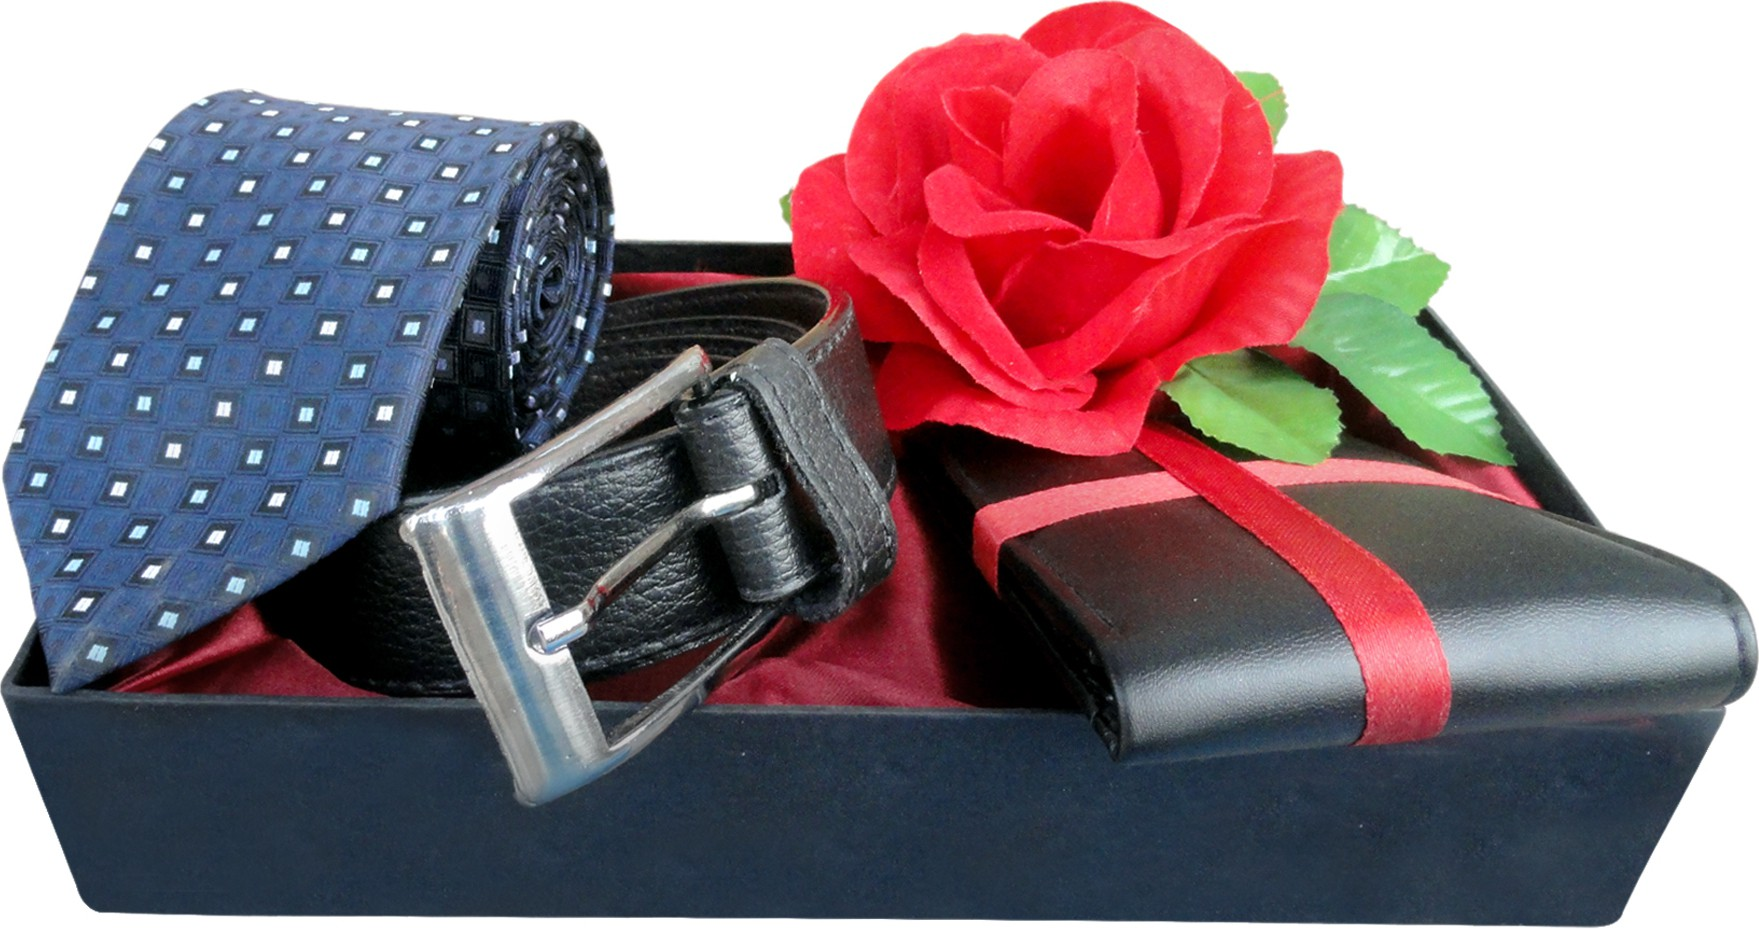 Deals | Belts, Tie & more Valentine Gifts for Him